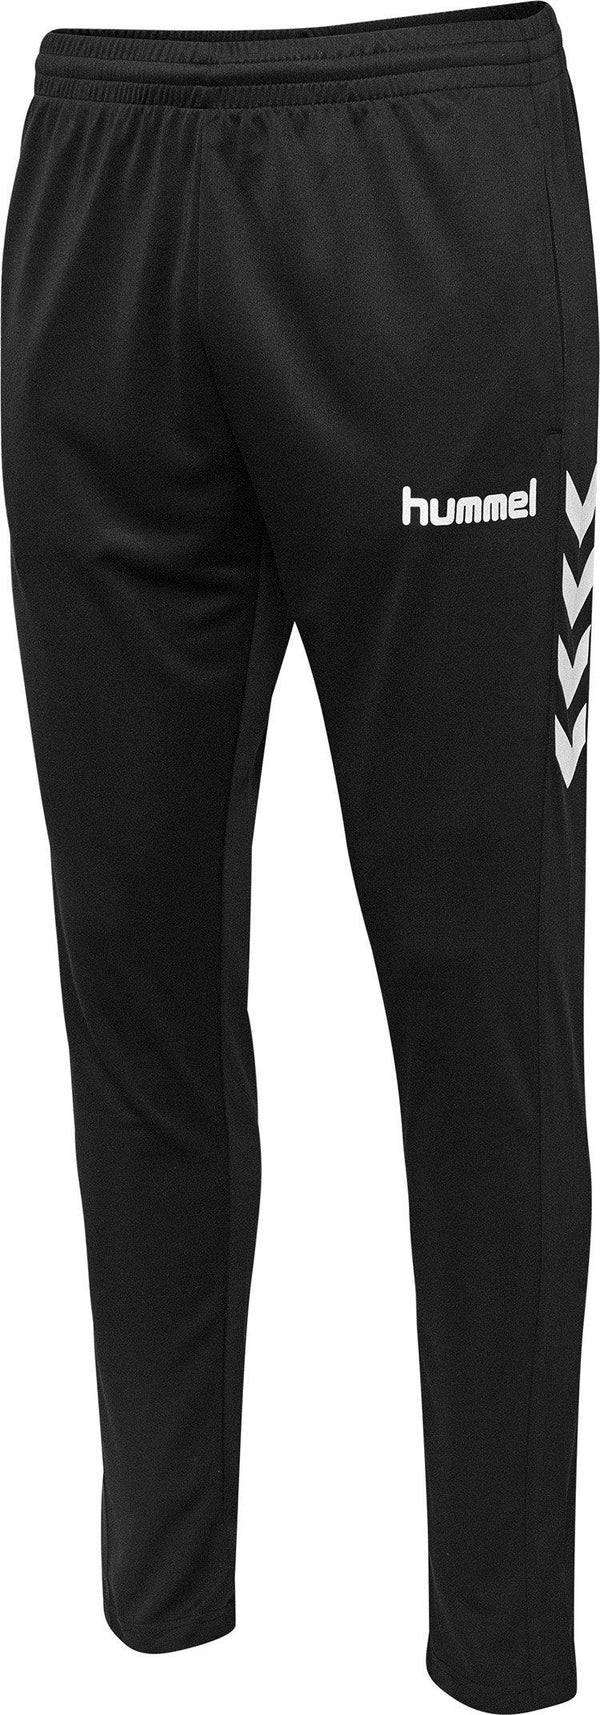 hummel Core Training Poly Pants-Apparel-Soccer Source